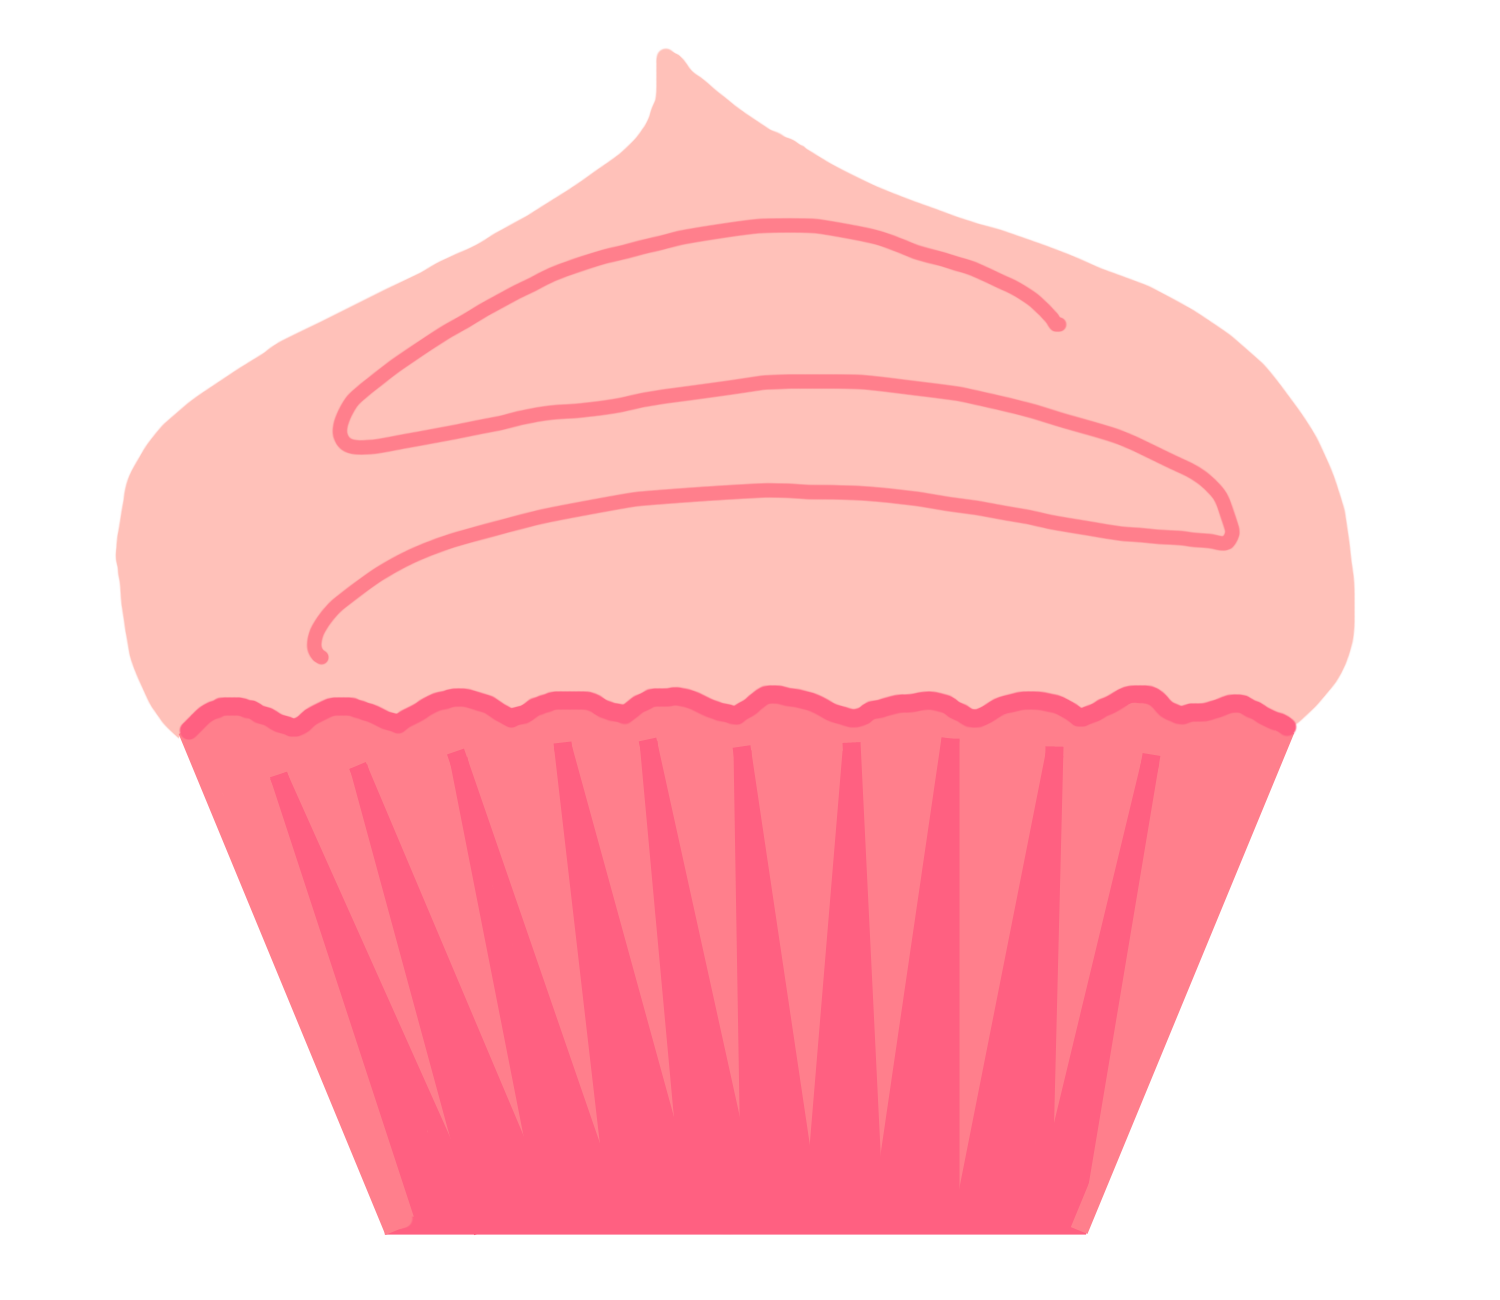 banner library download Cupcake Clip Art Black And White